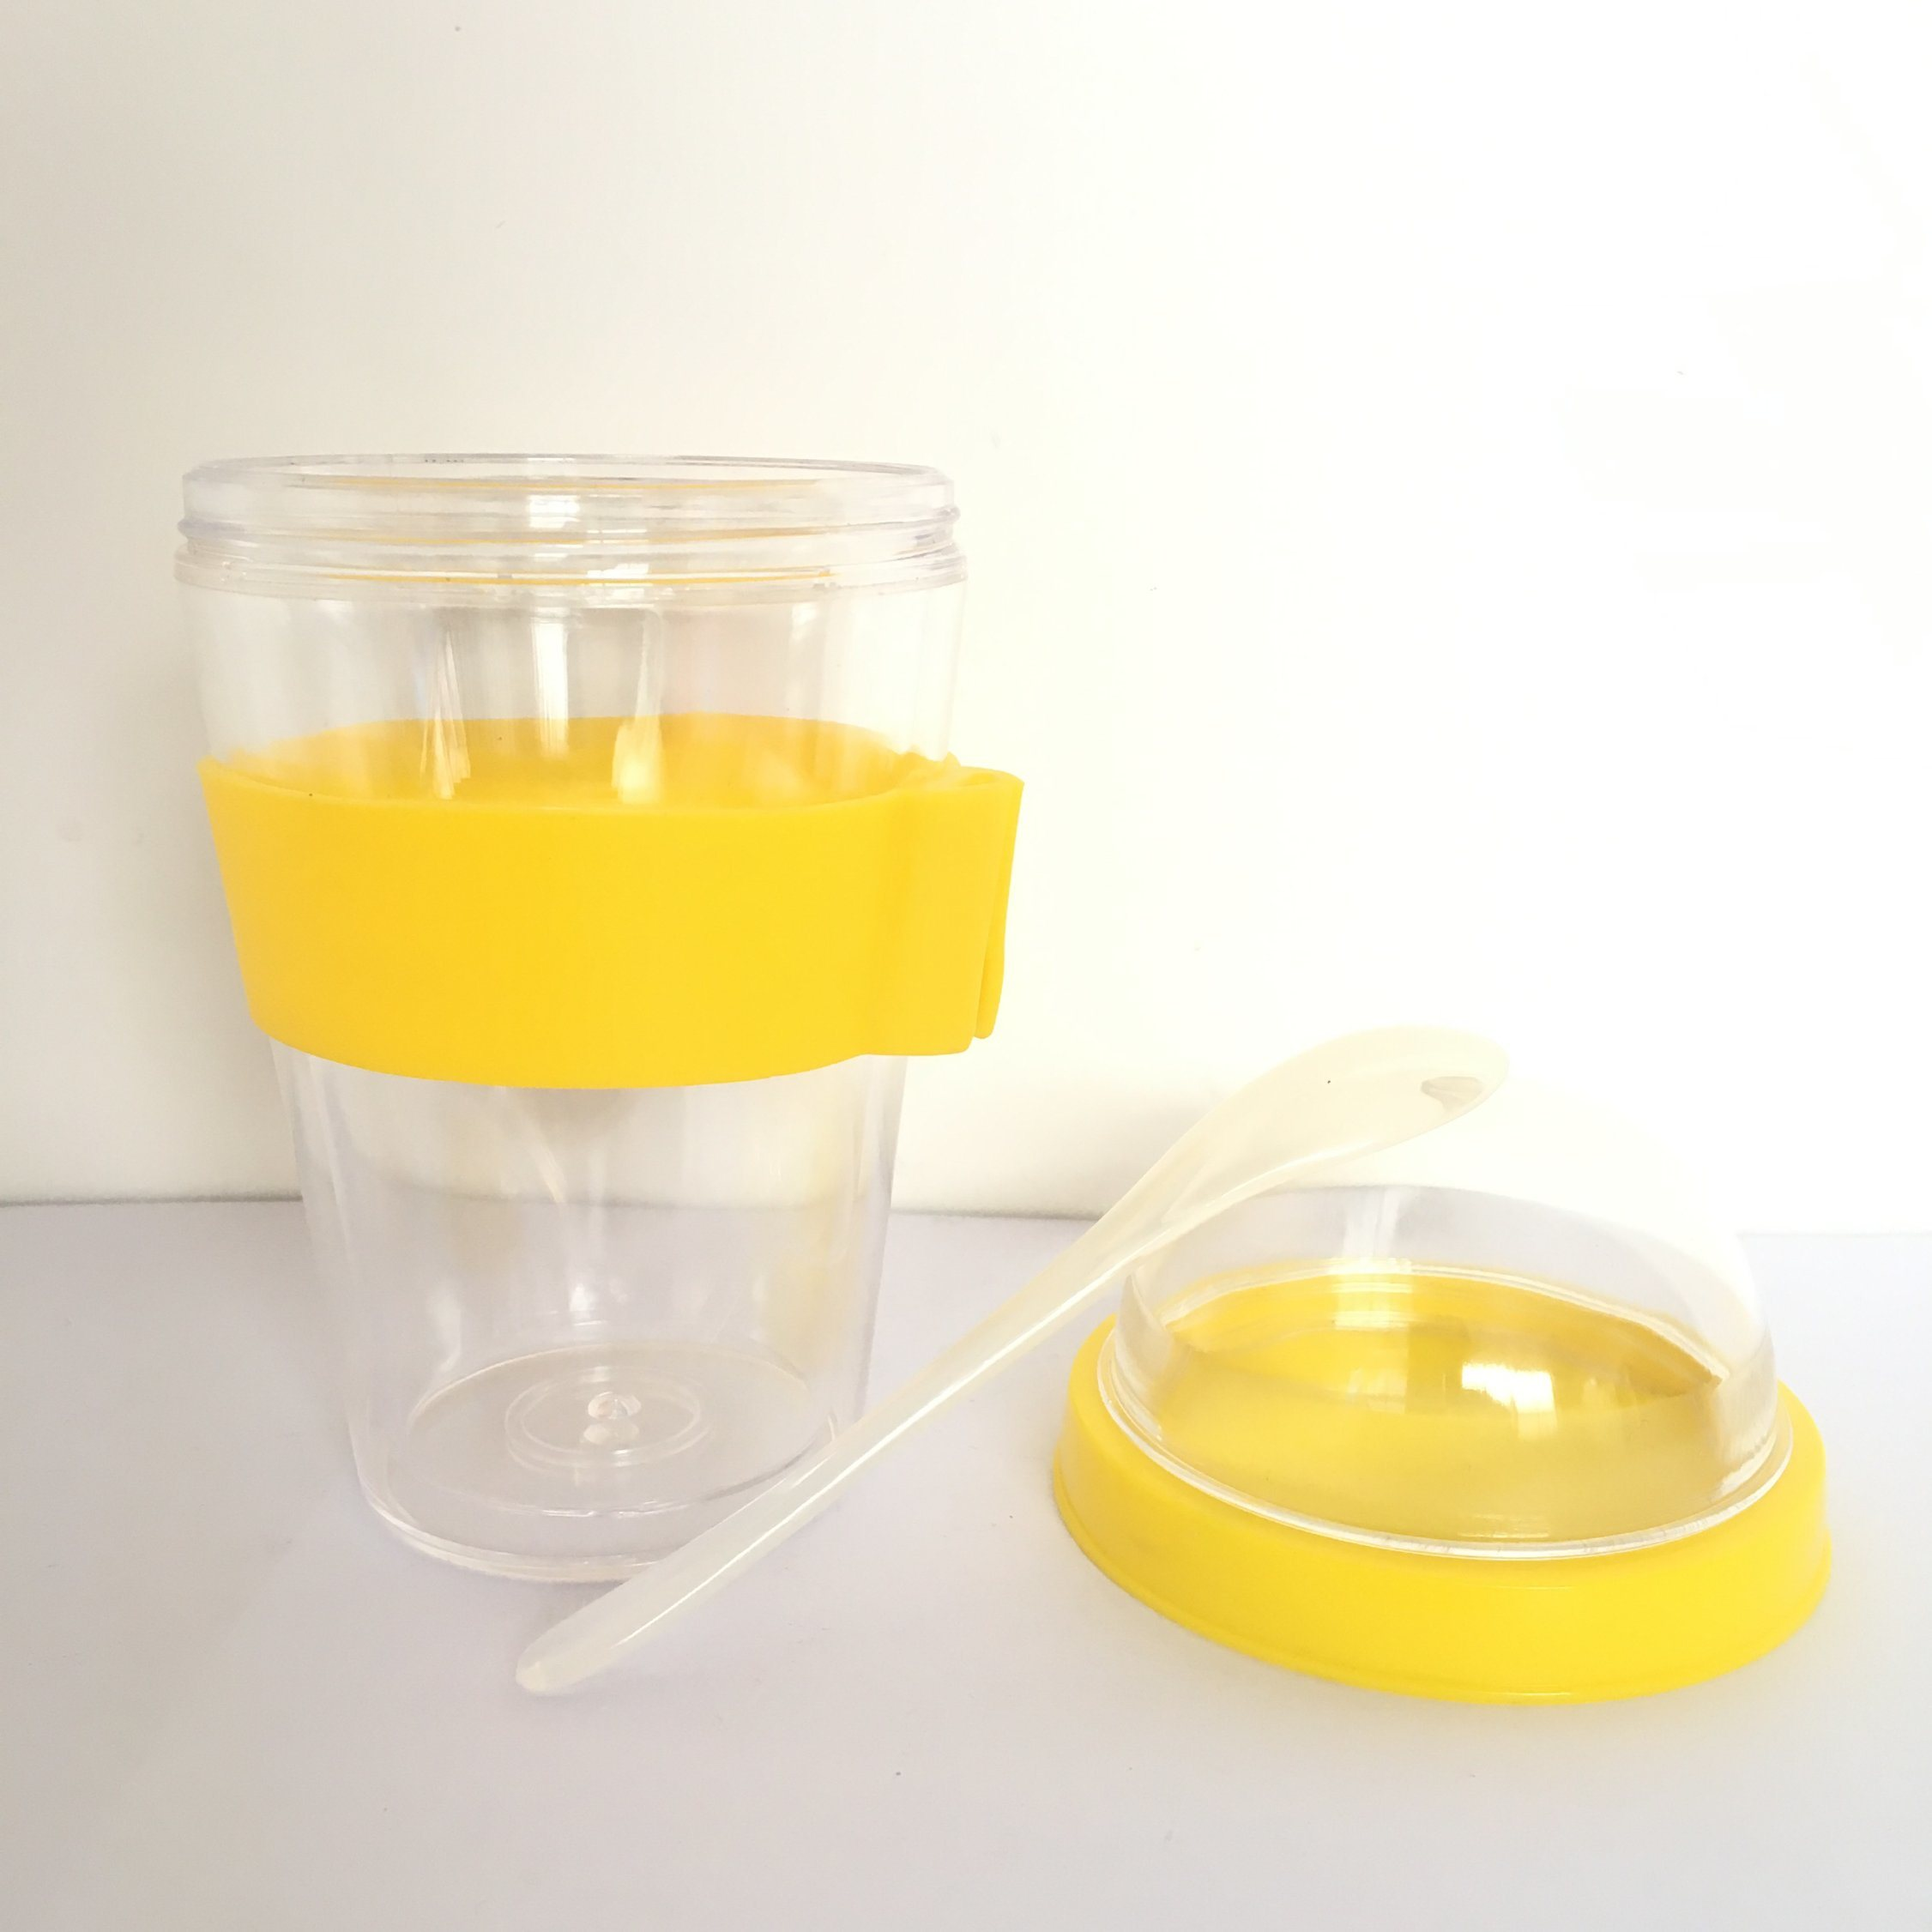 12 Ounce Cold Yogurt Breakfast Container Cup with Spoon and Silicone